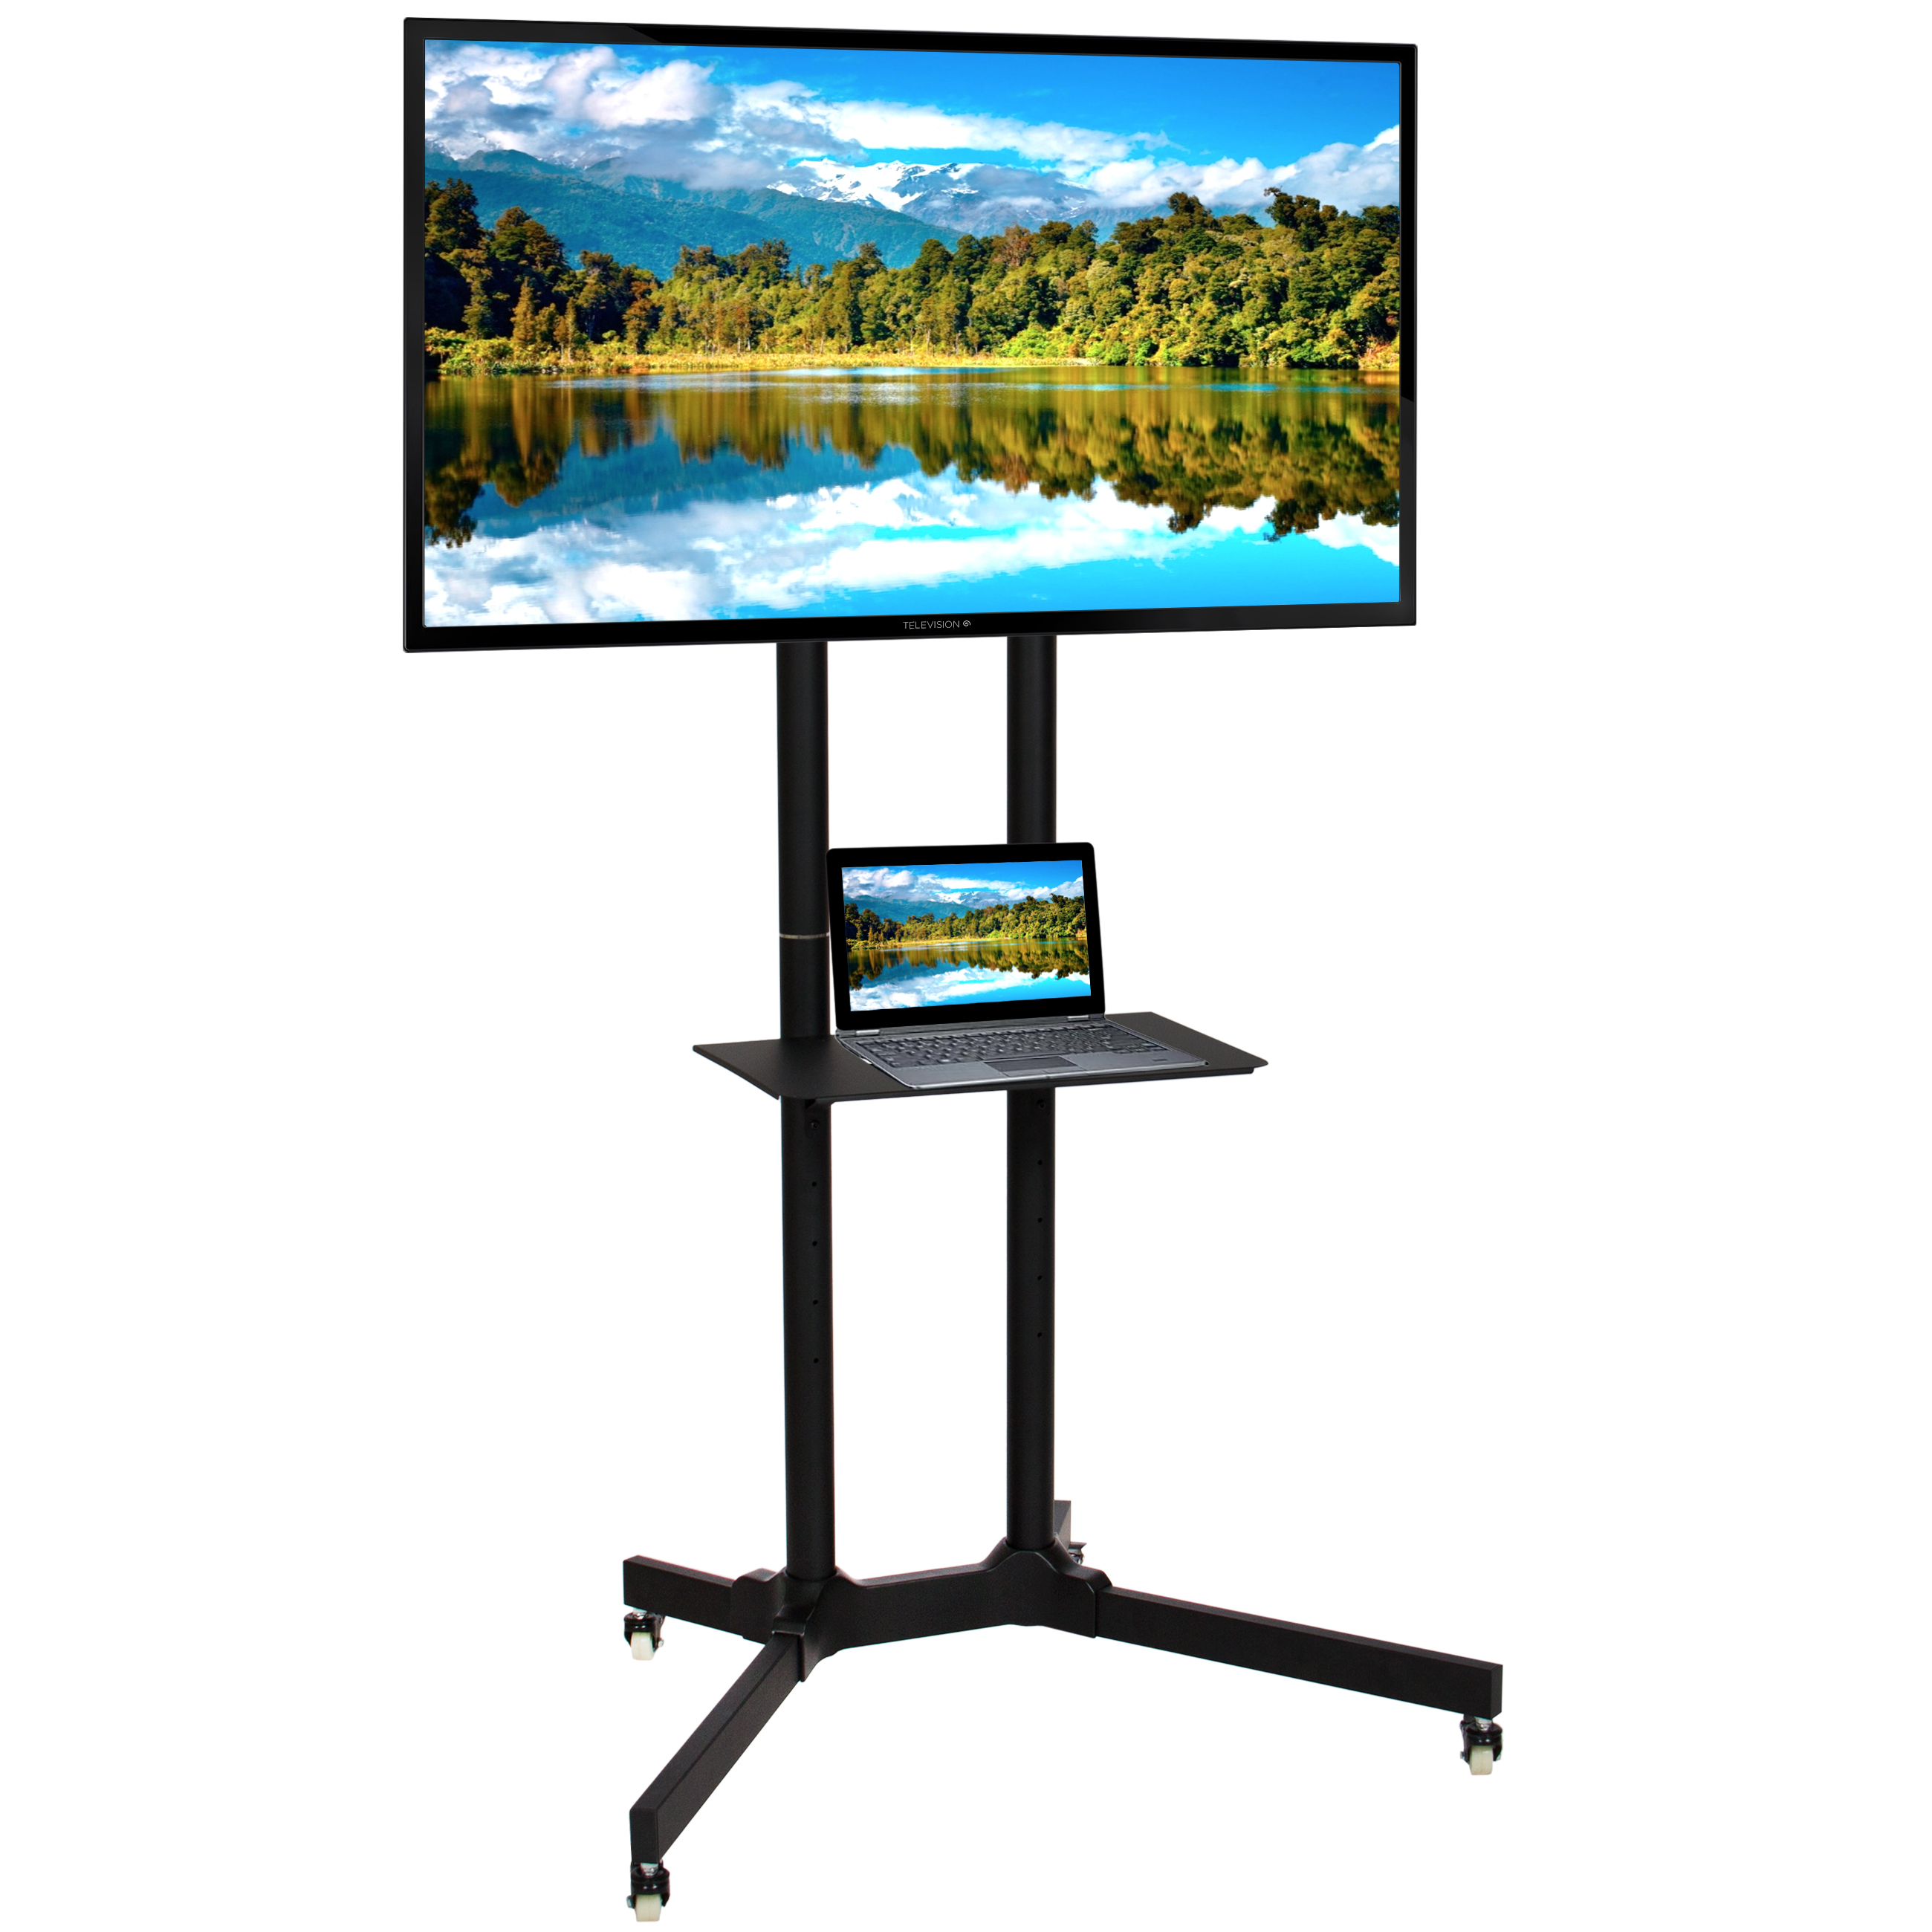 Tv Stand With Wheels Flat Panel Tv Stand Mobile Tv Cart W Wheels 32 Quot 65